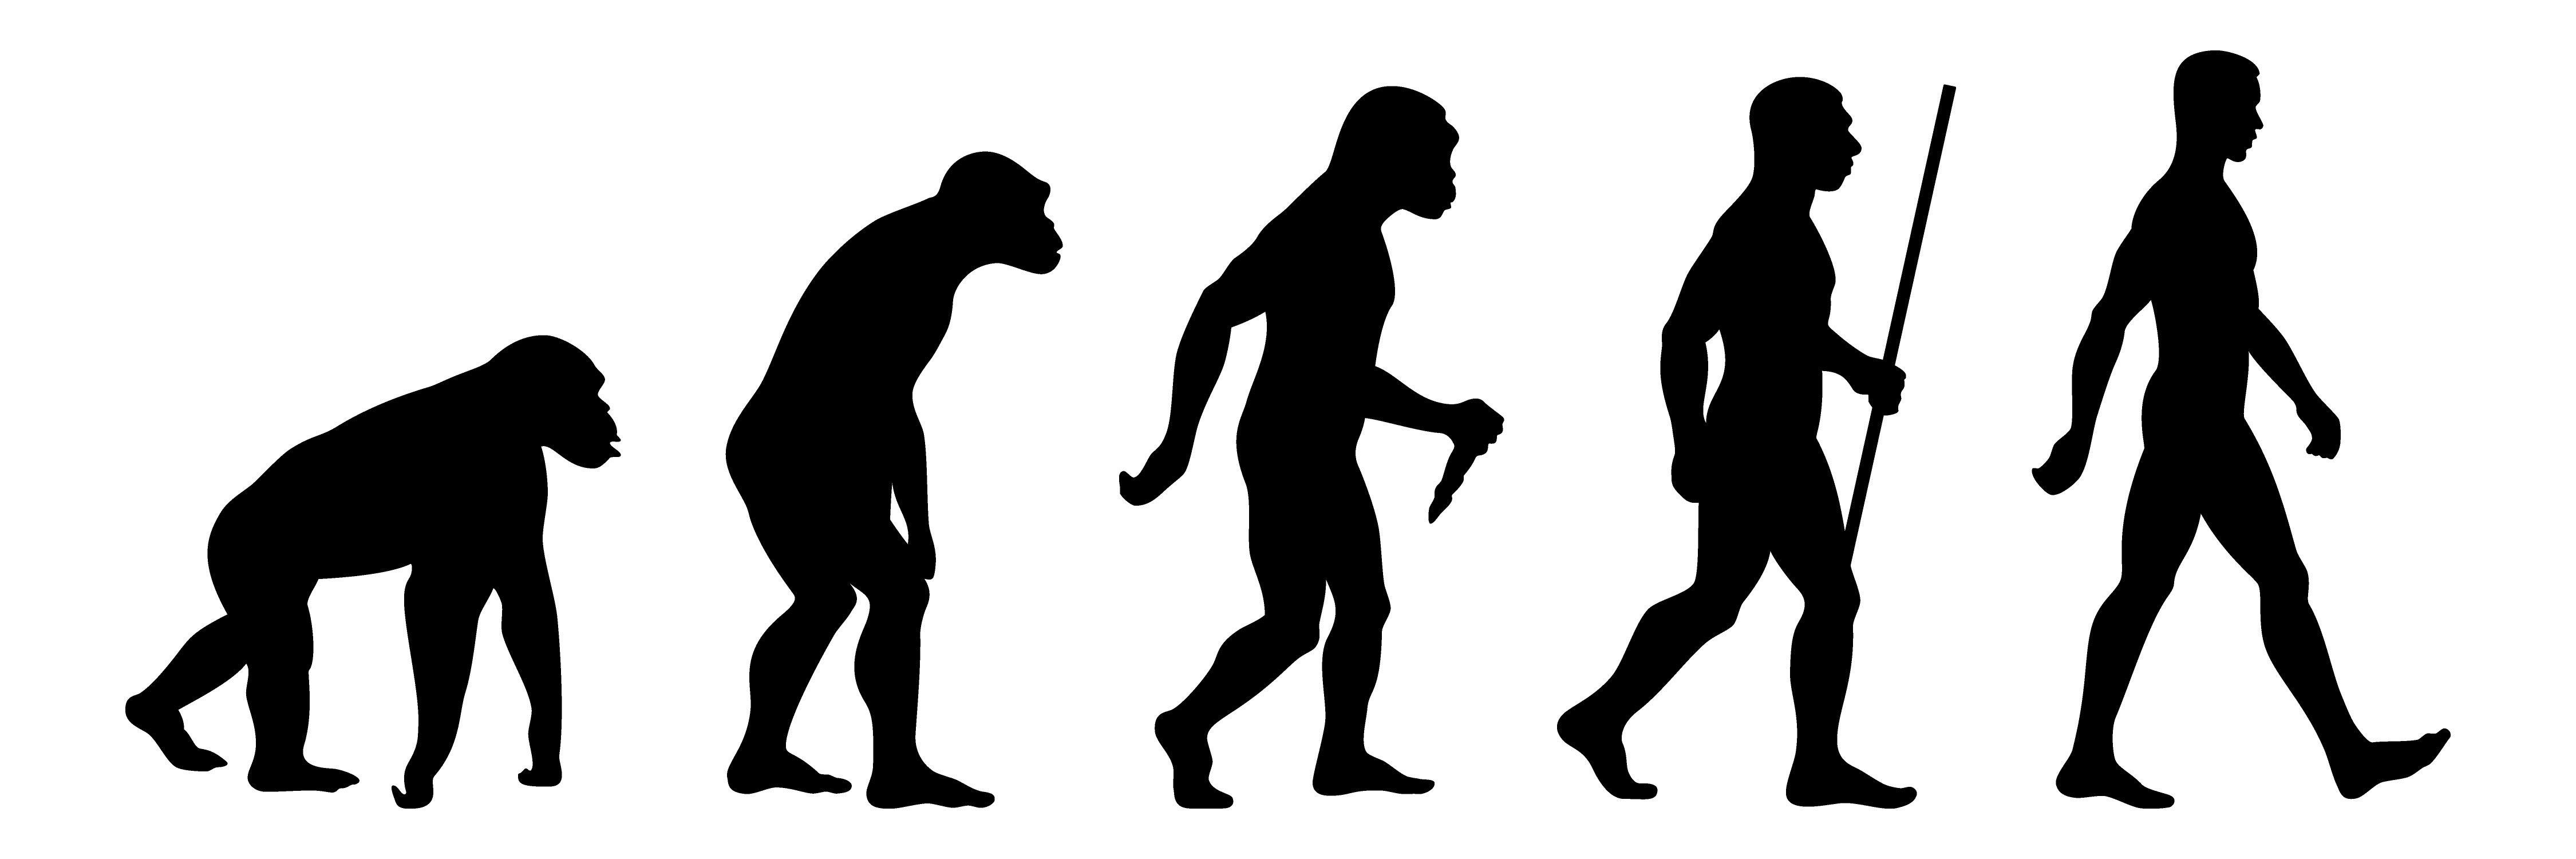 Black and white depiction of evolution, from primates to humans